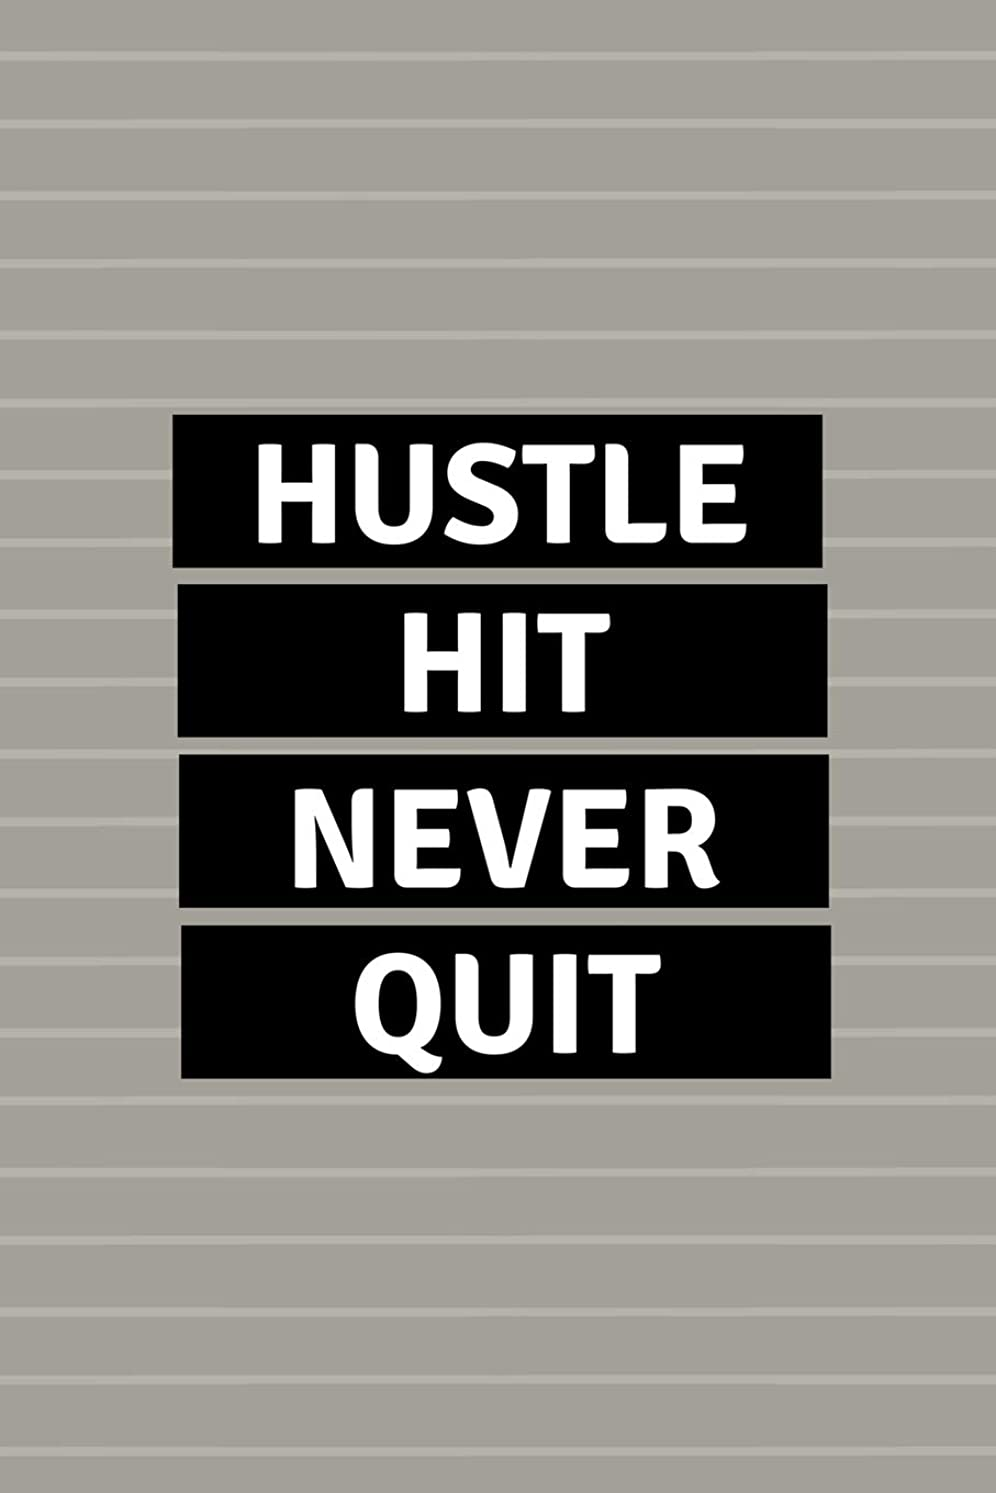 シャンプー静脈入場料Hustle Hit Never Quit: Black White Gray Stripe Sports Journal